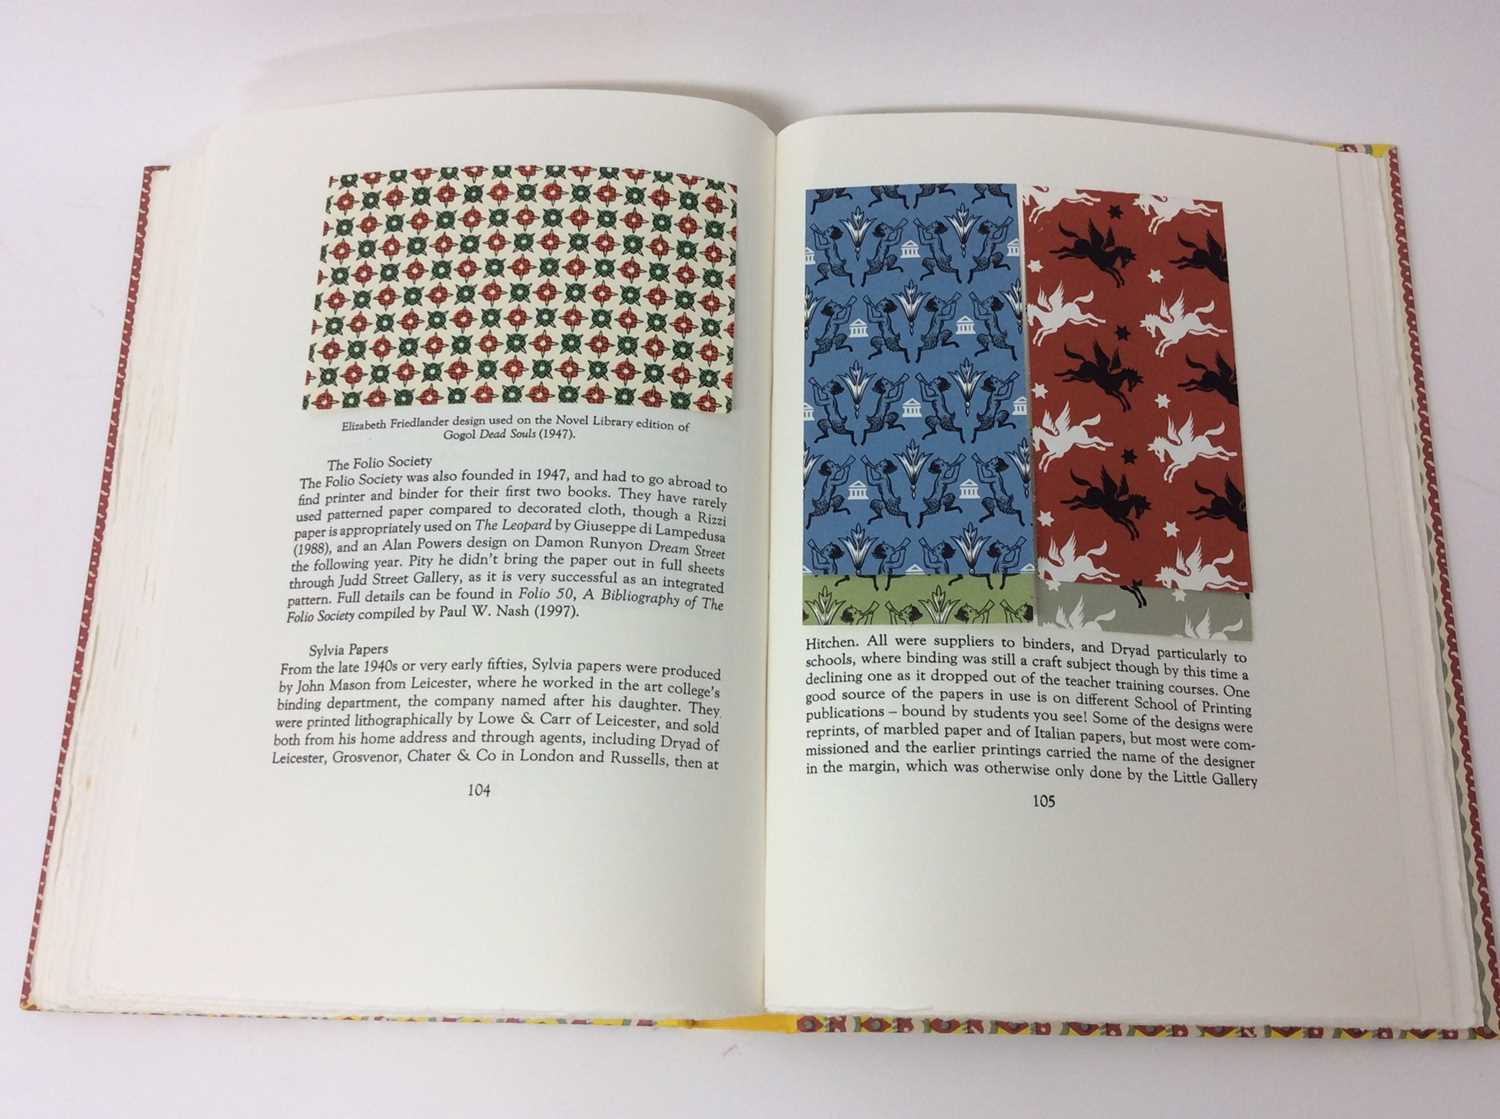 In Praise of Patterned Papers, Incline Press, 200/300 - Image 9 of 12